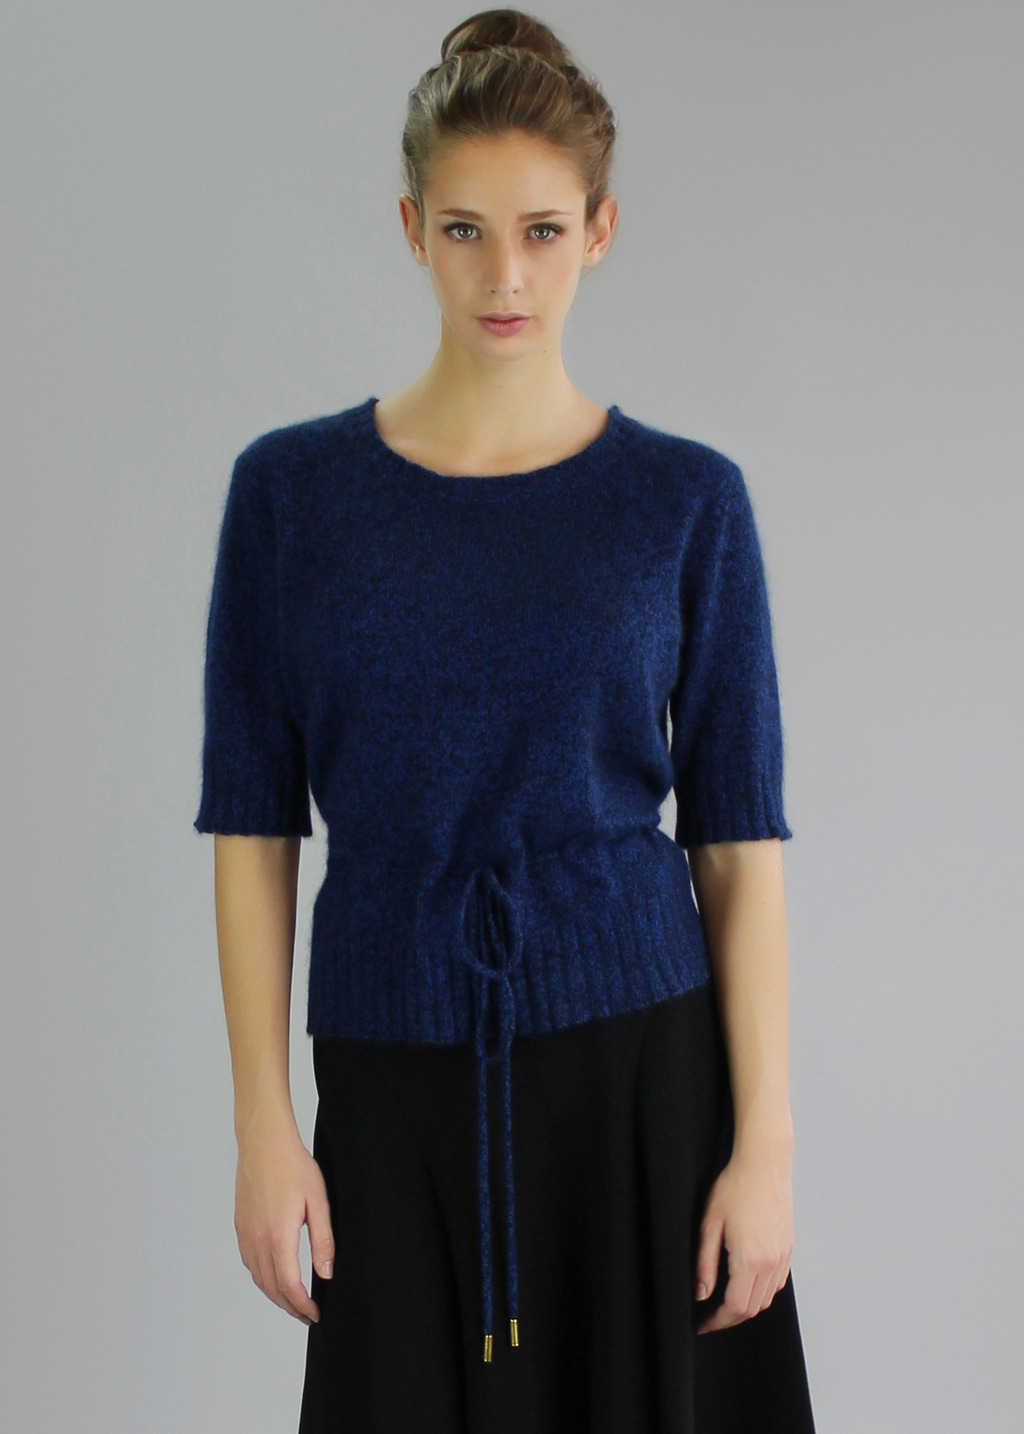 Blue Jayne Top - neckline: round neck; pattern: plain; waist detail: belted waist/tie at waist/drawstring; predominant colour: royal blue; occasions: casual, creative work; length: standard; style: top; fibres: silk - mix; fit: body skimming; sleeve length: half sleeve; sleeve style: standard; texture group: knits/crochet; pattern type: knitted - other; season: a/w 2013; wardrobe: highlight